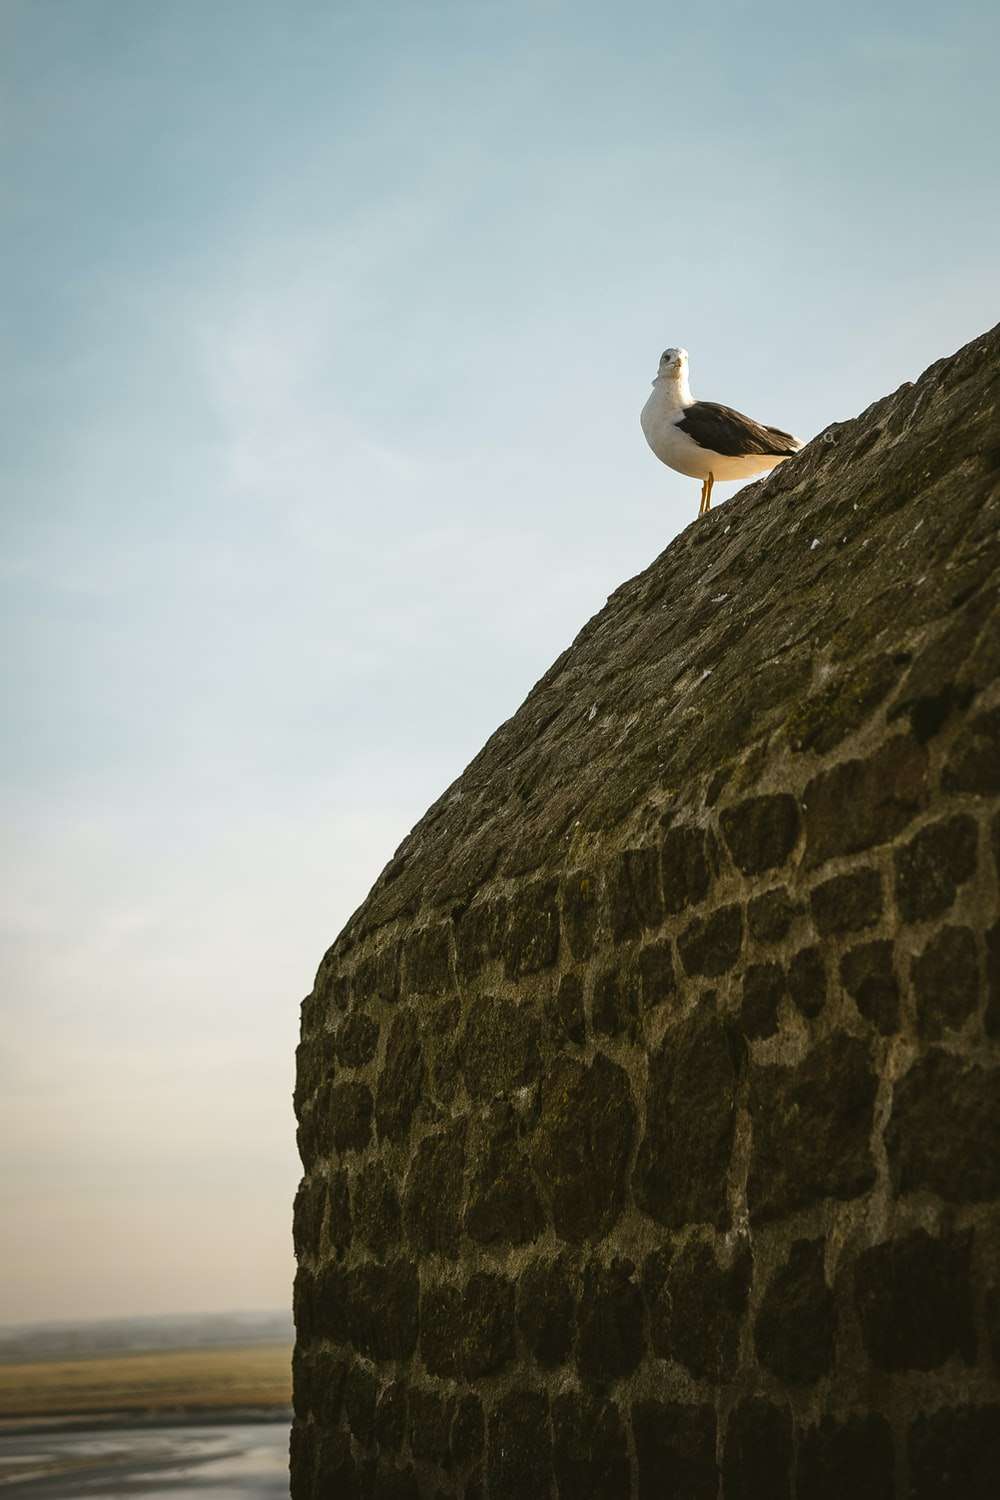 seagull bird on gray stone wall under white and blue sky